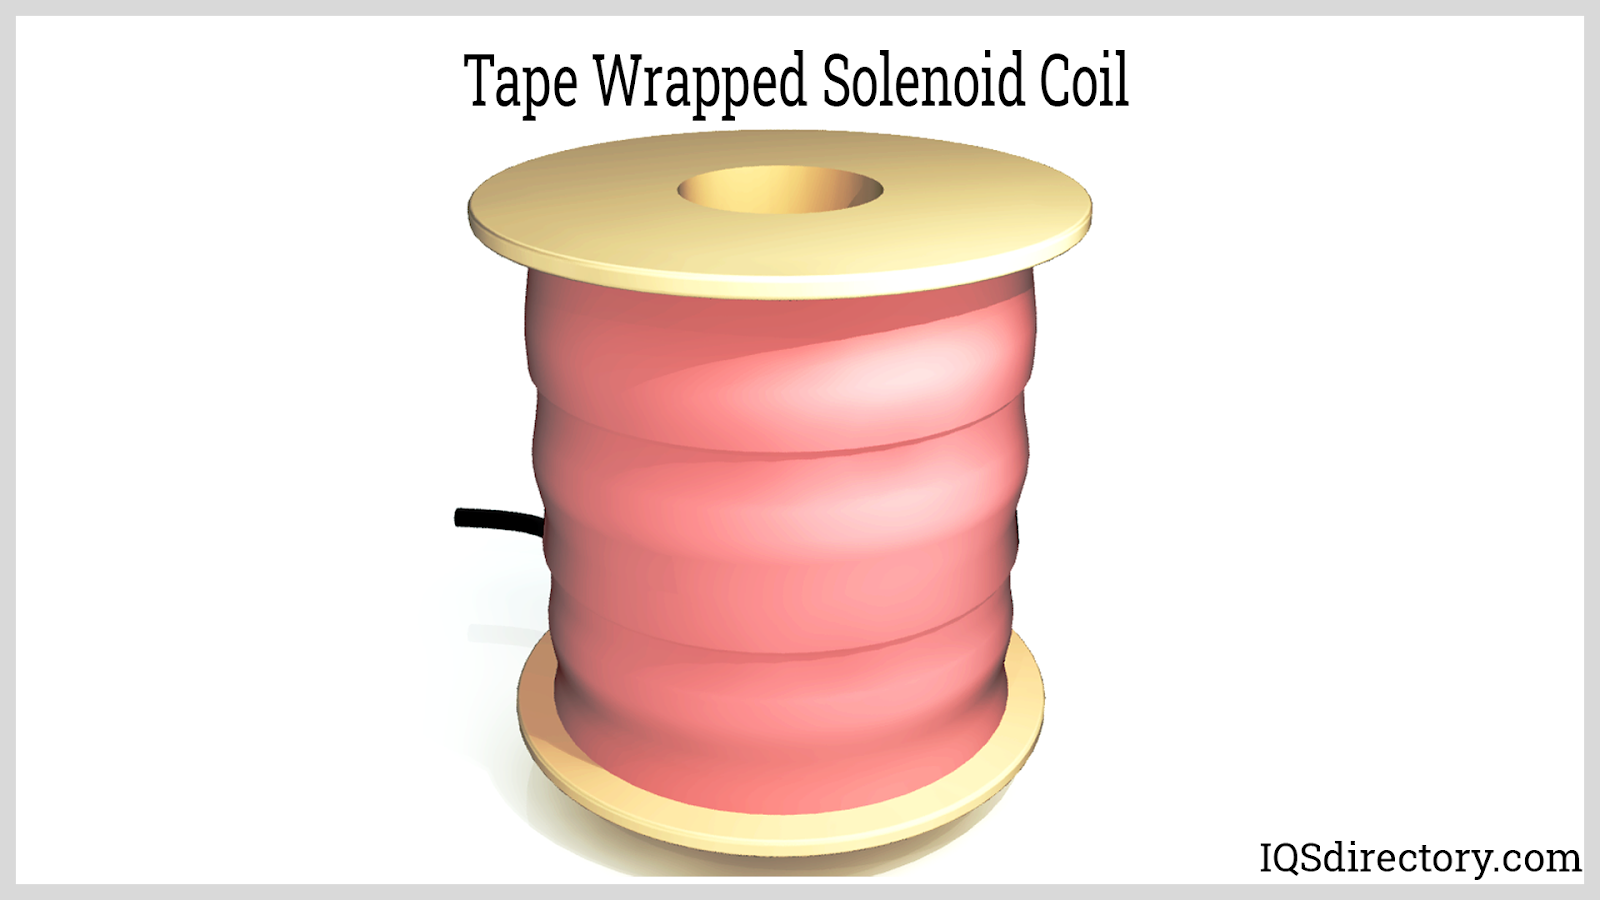 Tape Wrapped Solenoid Coil